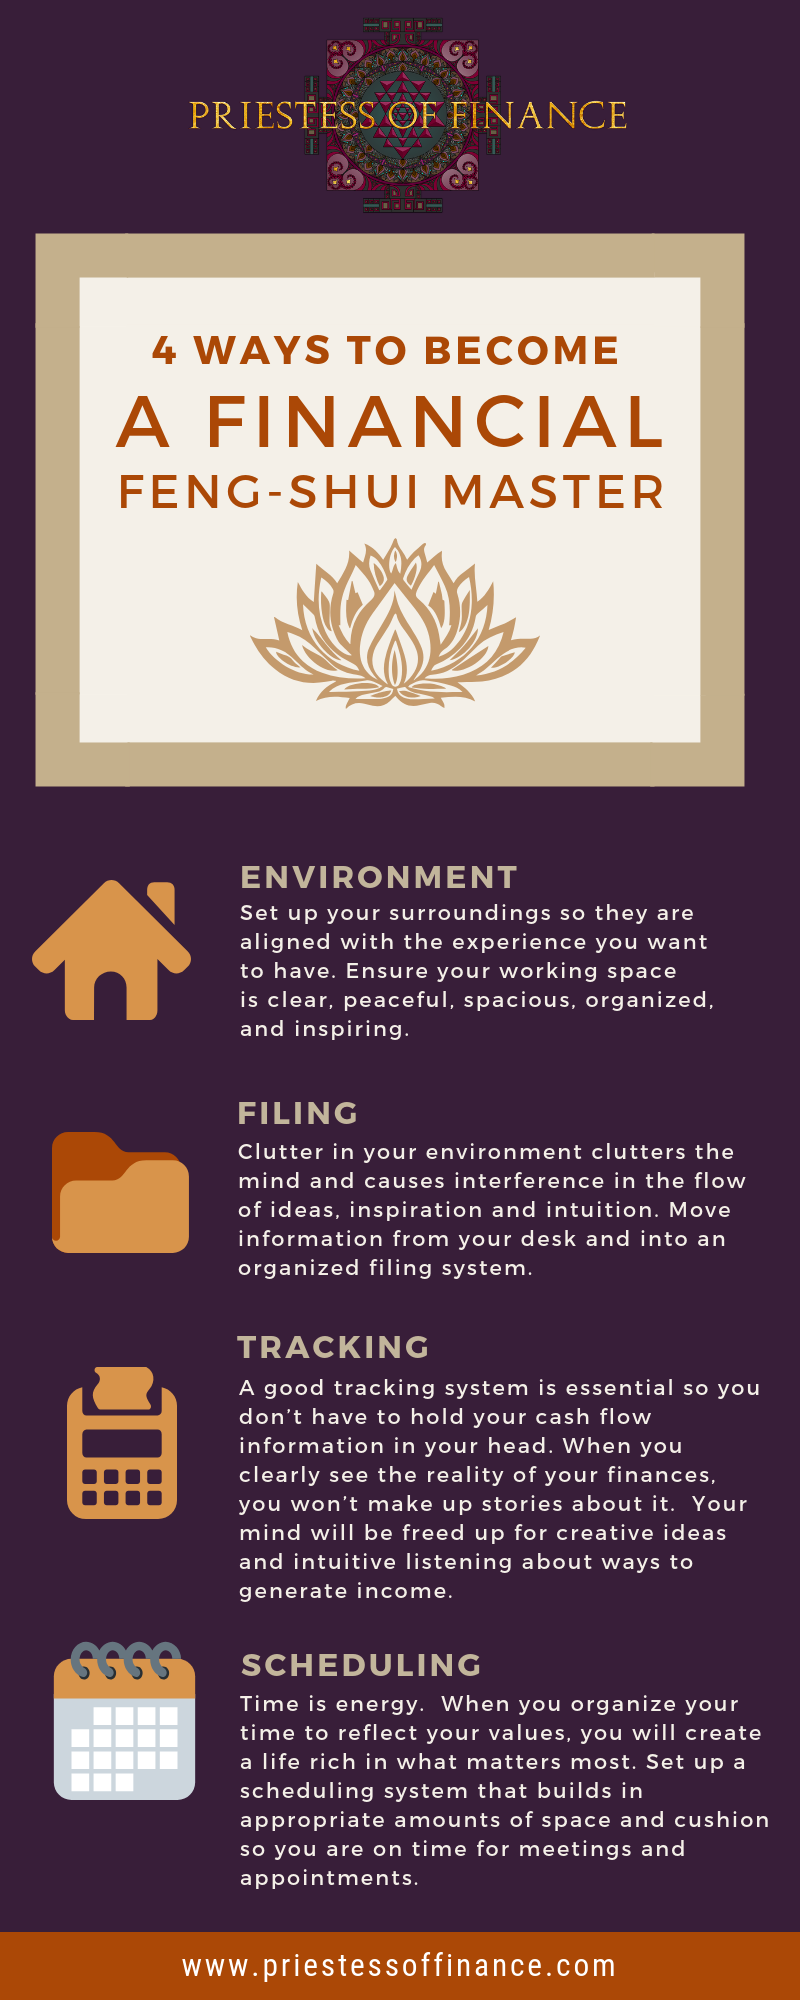 4 Ways To Become A Financial Feng-Shui Master.png